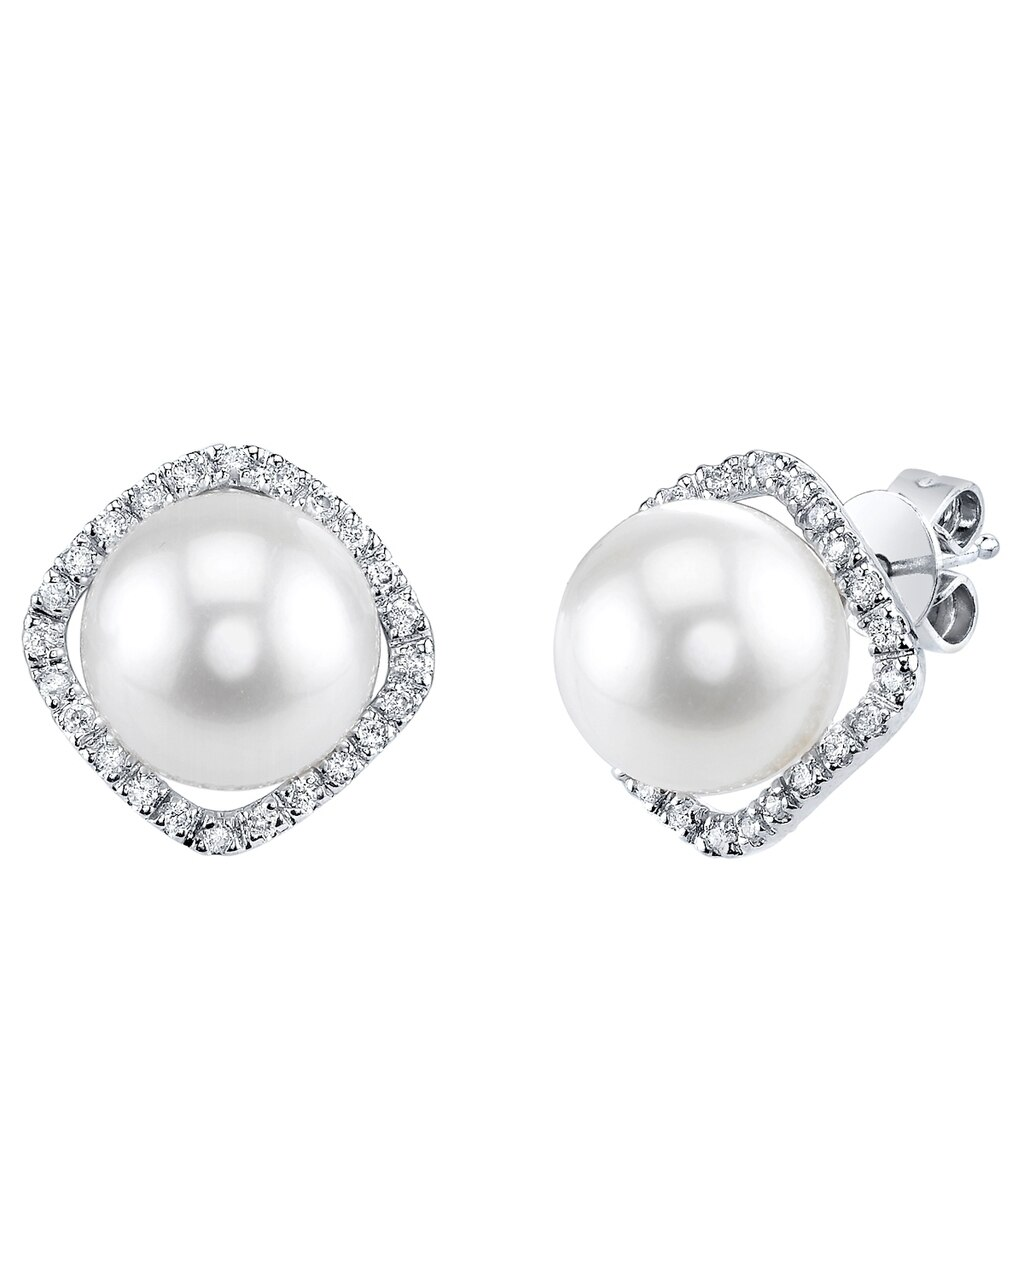 Exquisite earrings feature two 8.0-9.0mm  White South Sea pearls, selected for their luminous luster